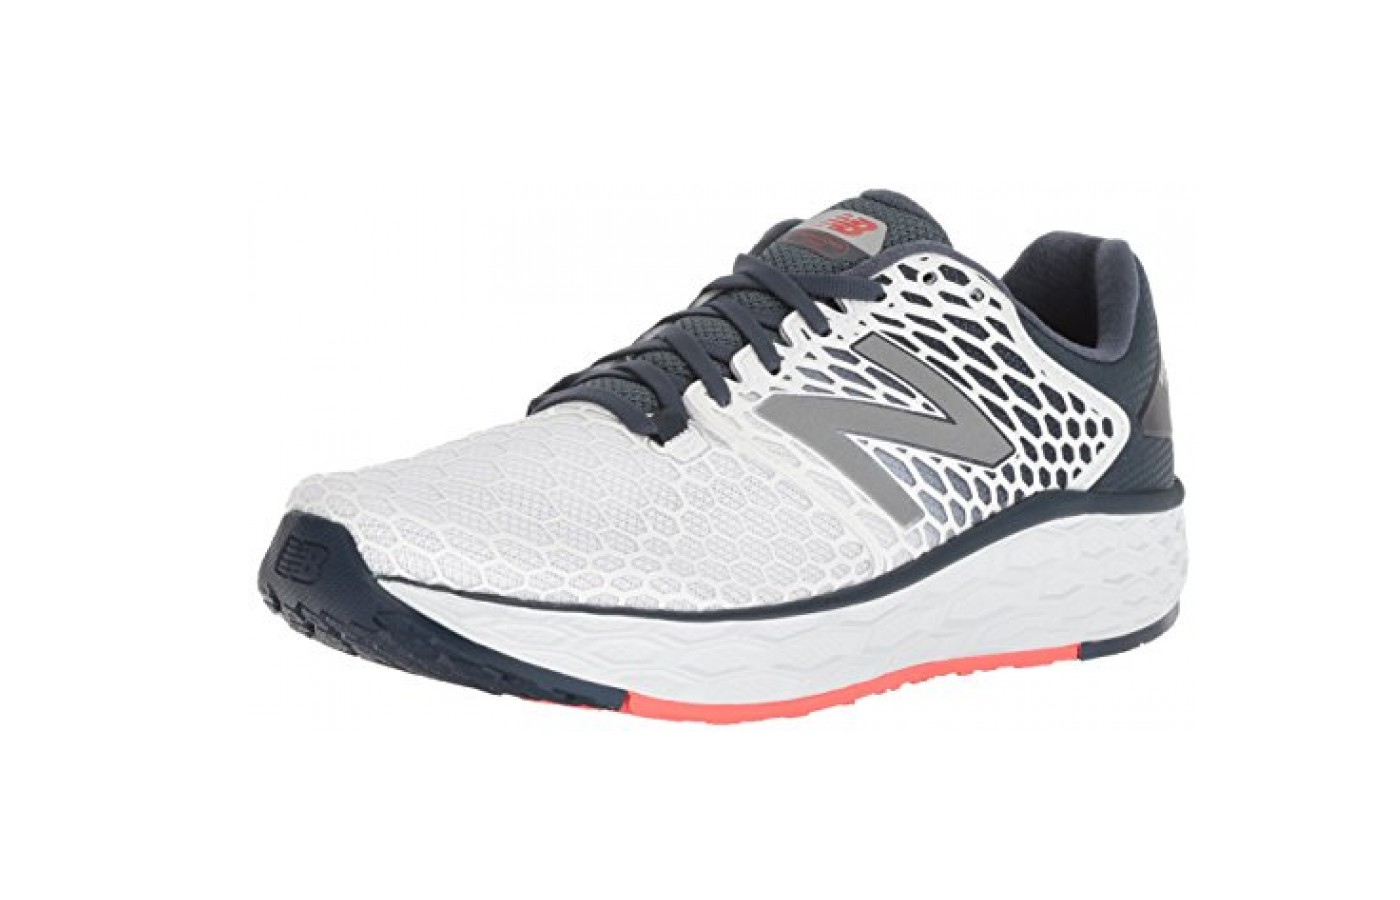 New Balance Fresh Foam Vongo V3 1